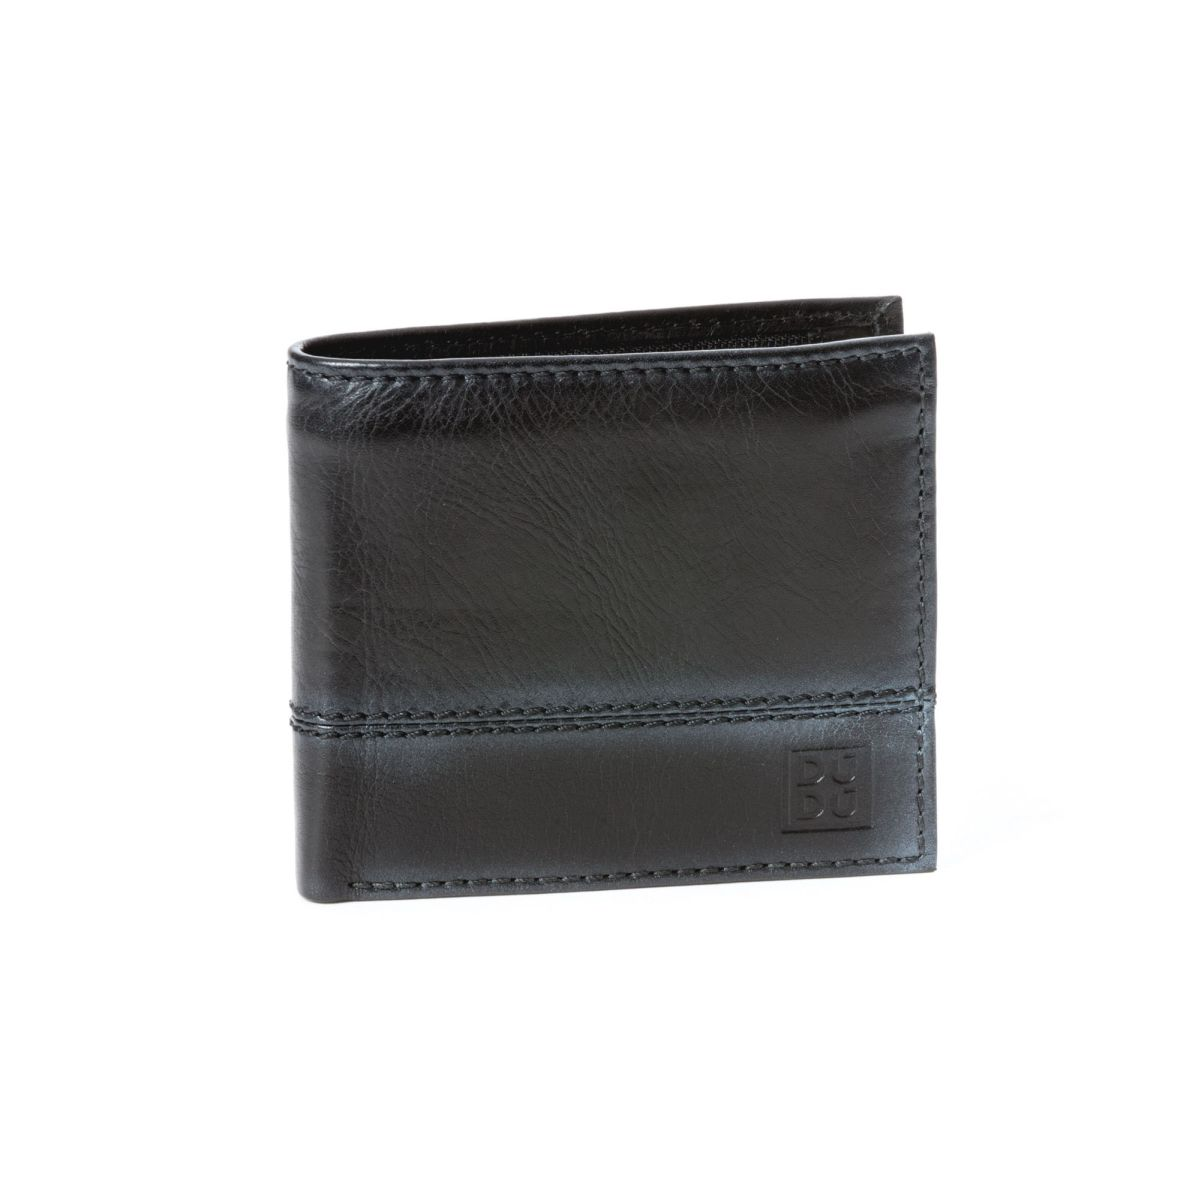 Unique Leather Wallet With Coin Purse - Black